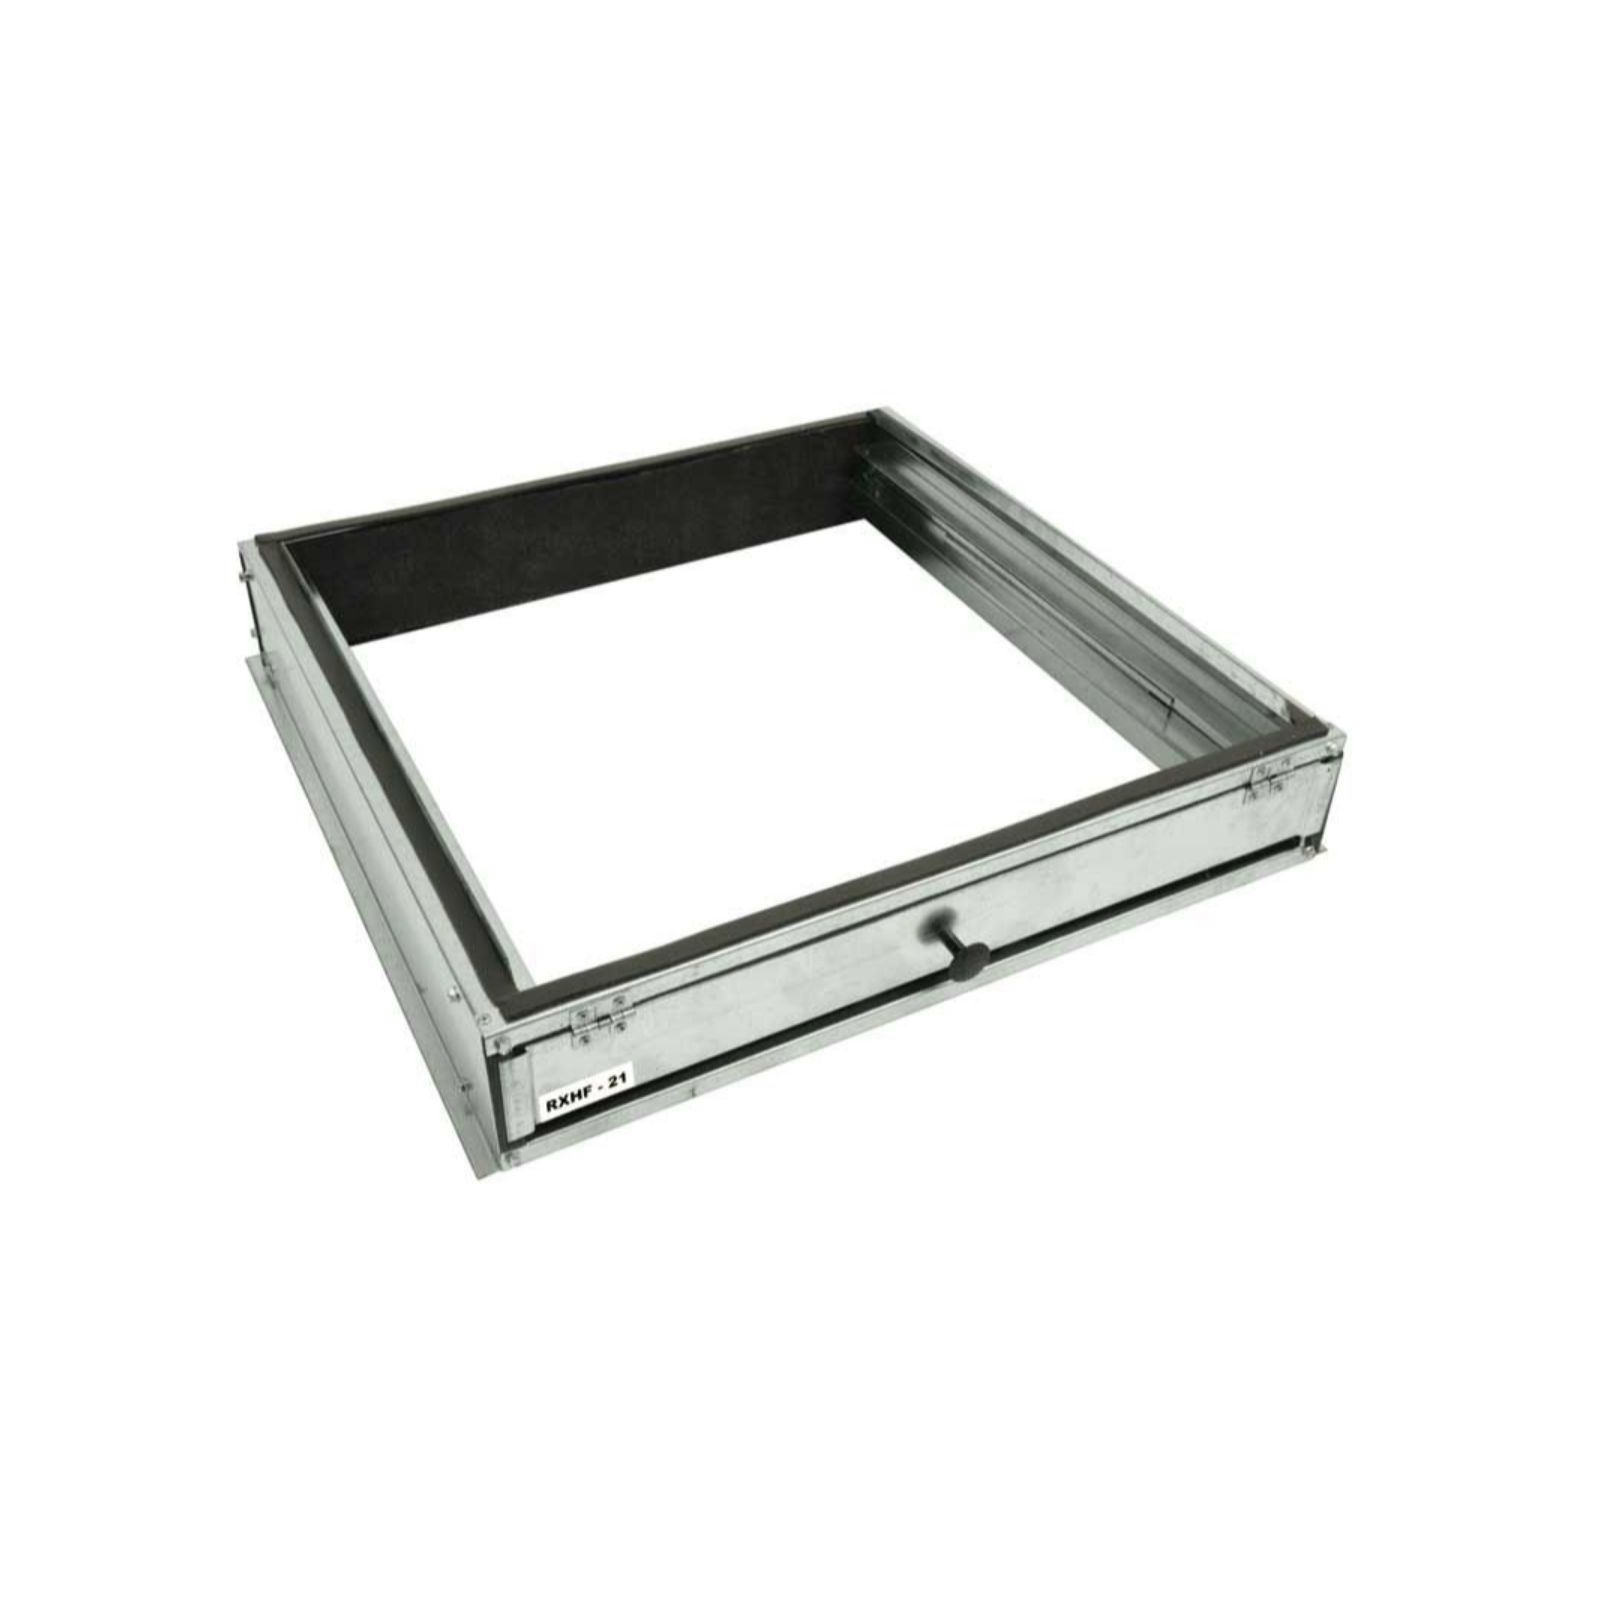 Rheem RXHF-21 - External Filter Rack - 21 in.